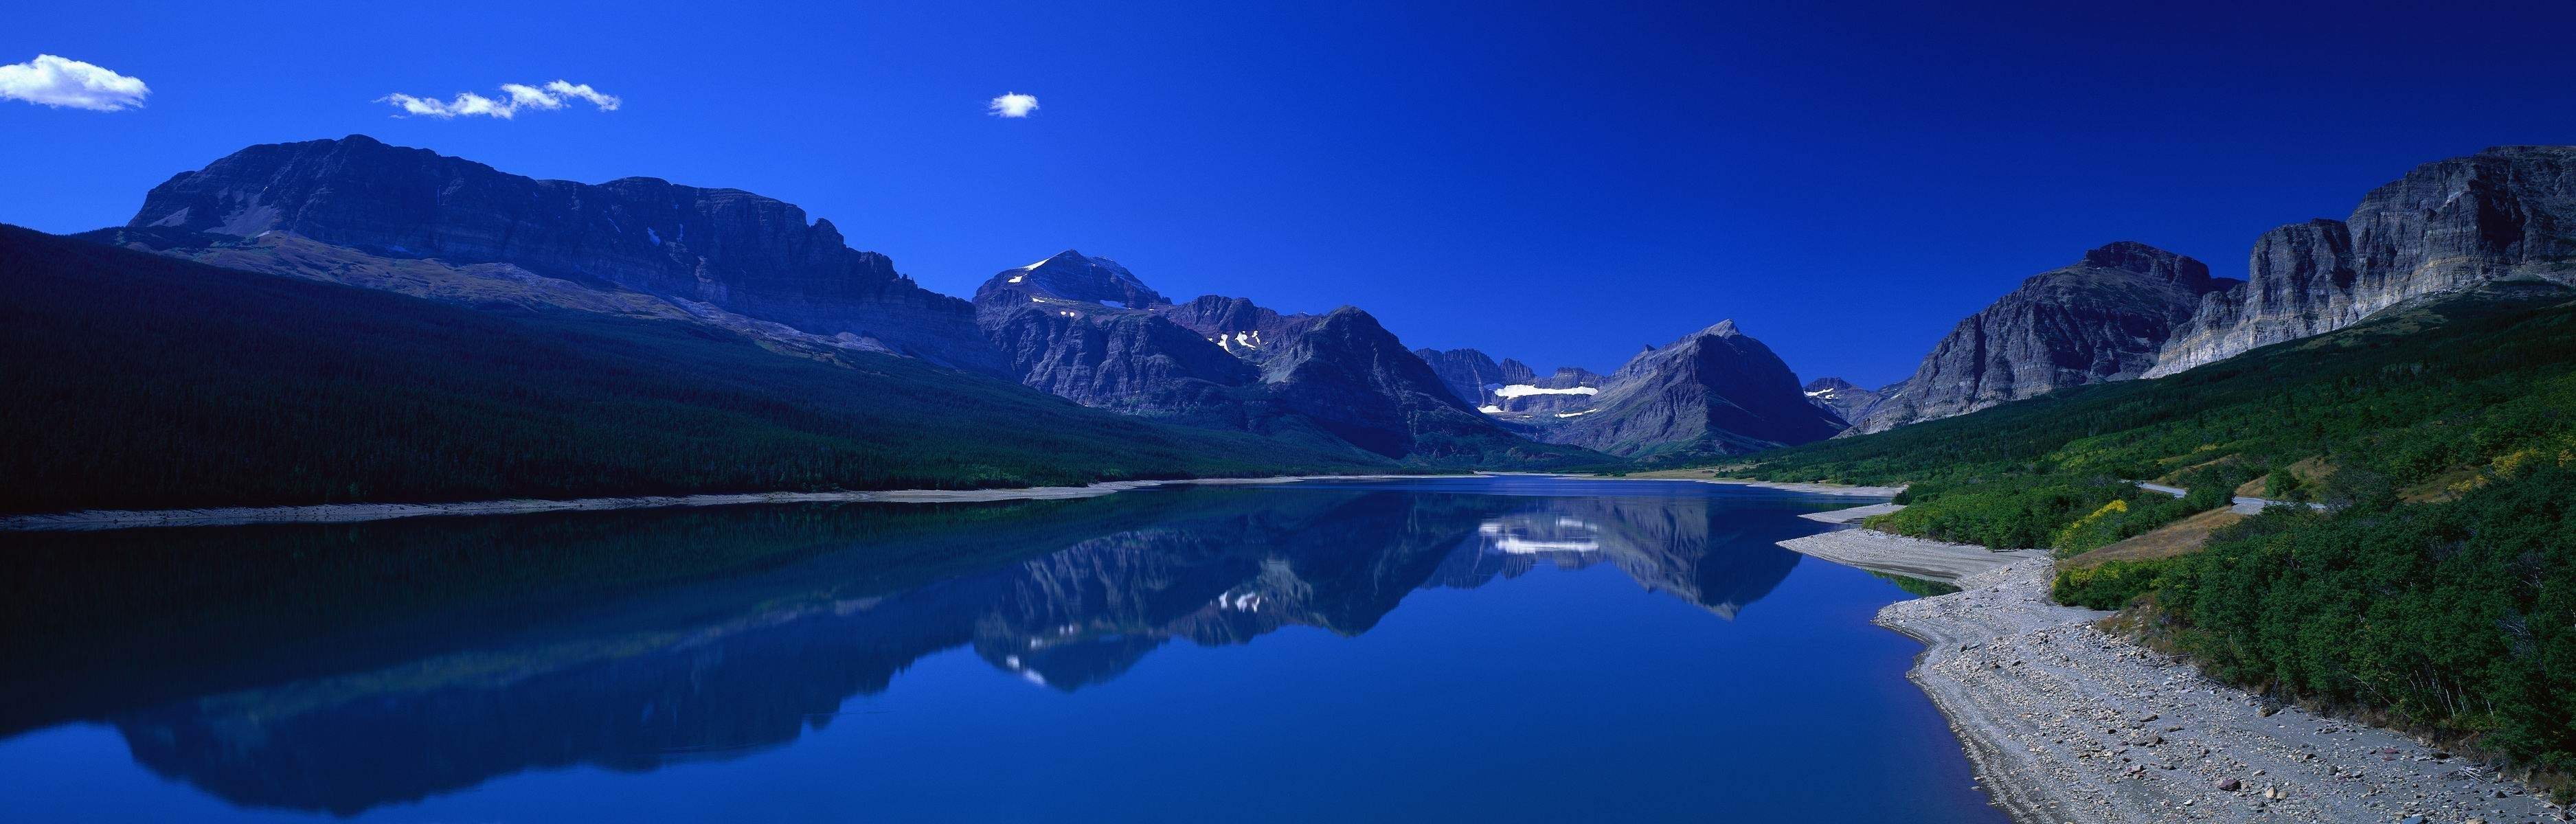 panoramic backgrounds free download - wallpaper.wiki